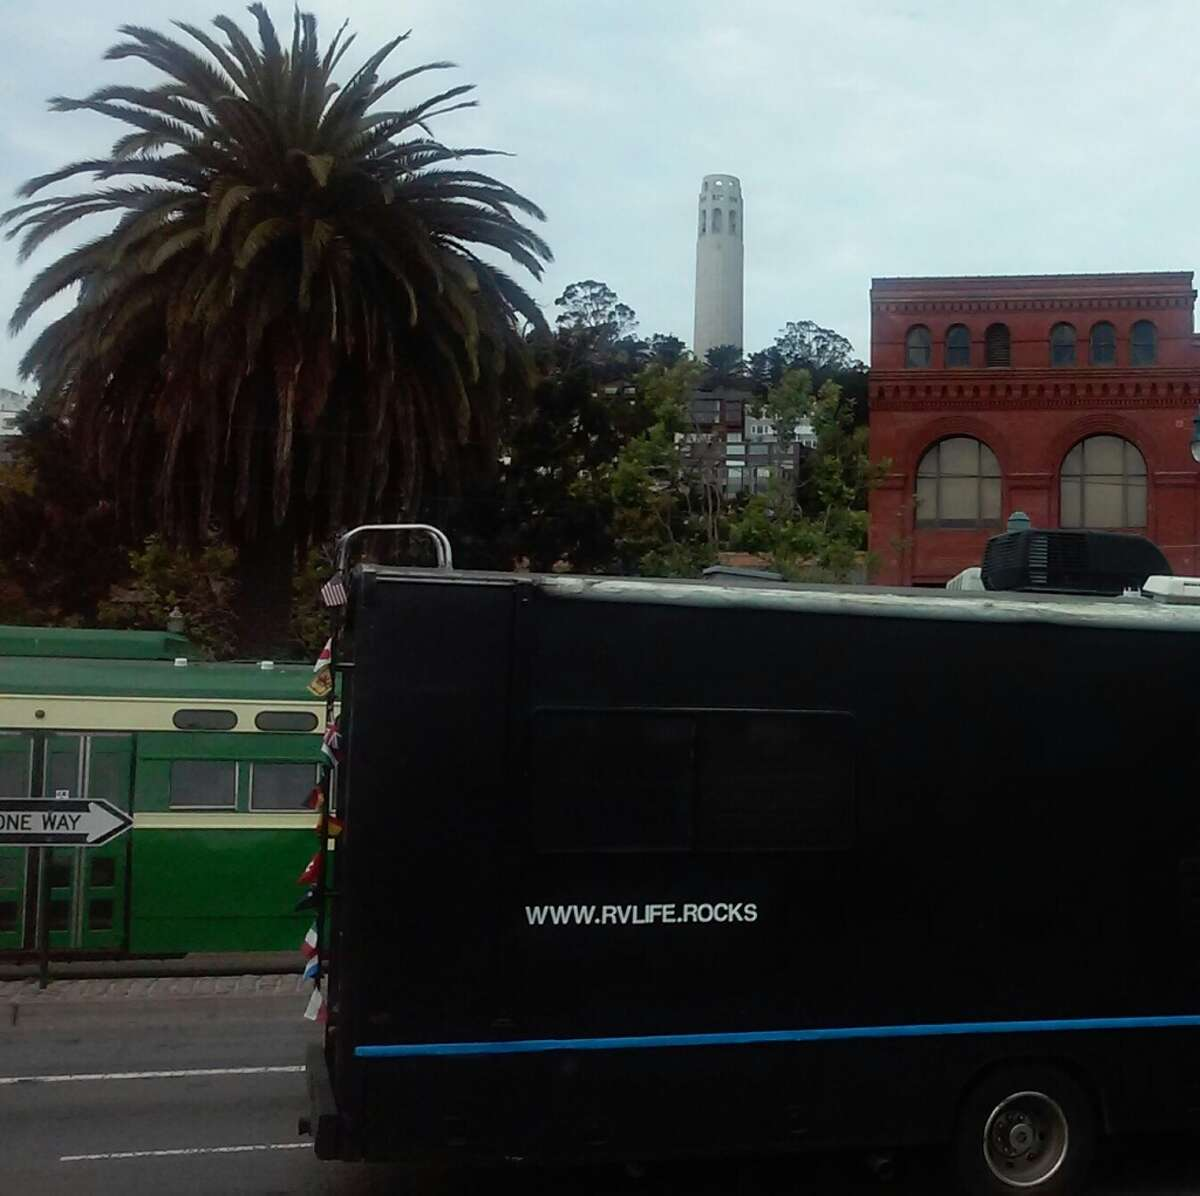 Michael Salvato says life in an RV such as theirs (seen near Coit Tower) can have a